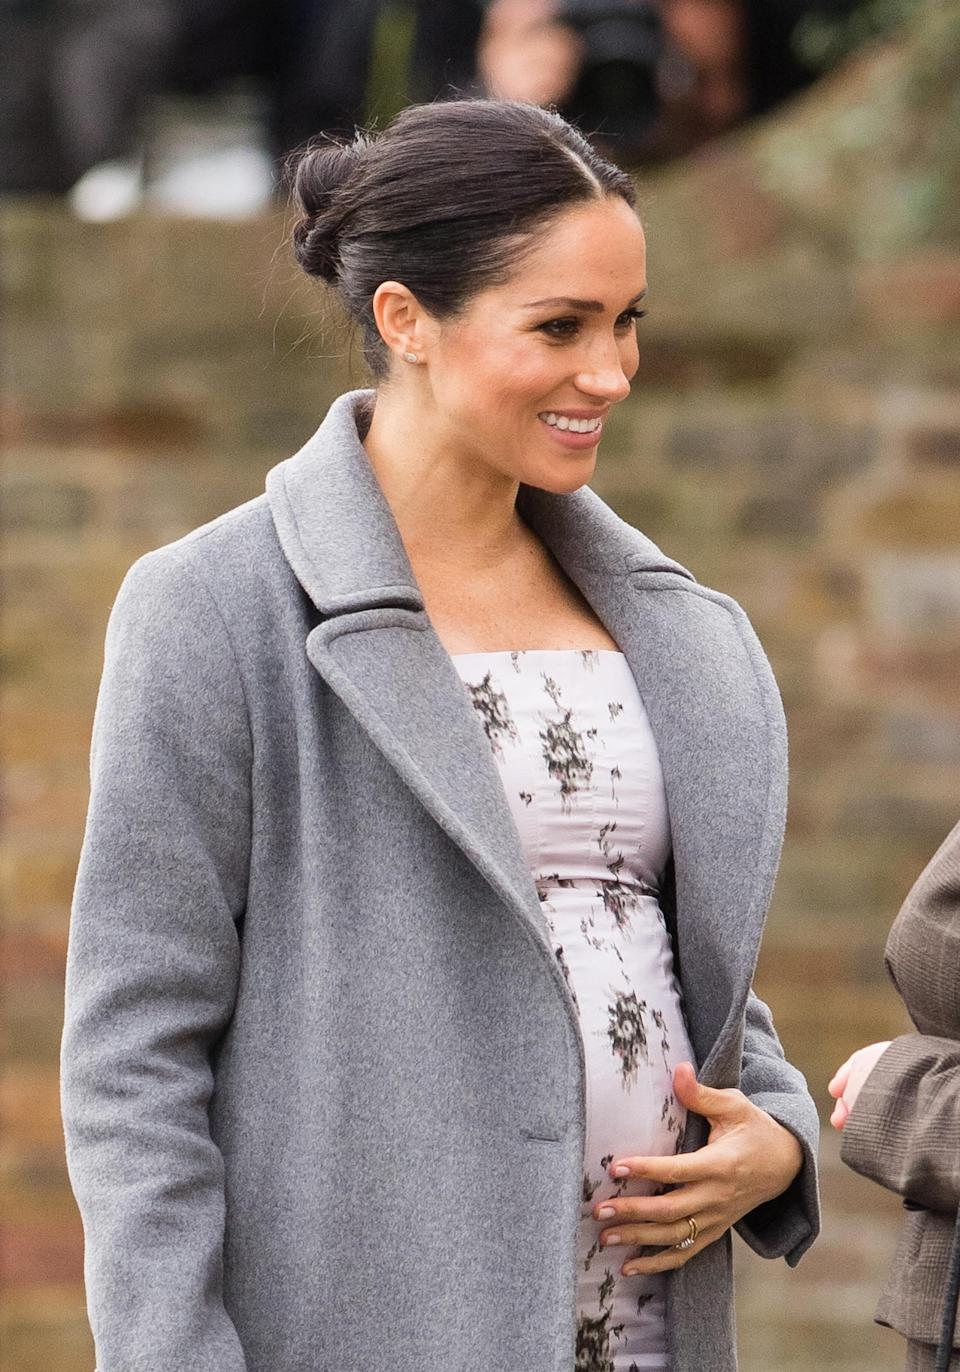 Meghan pats her baby bump [Photo: Getty]